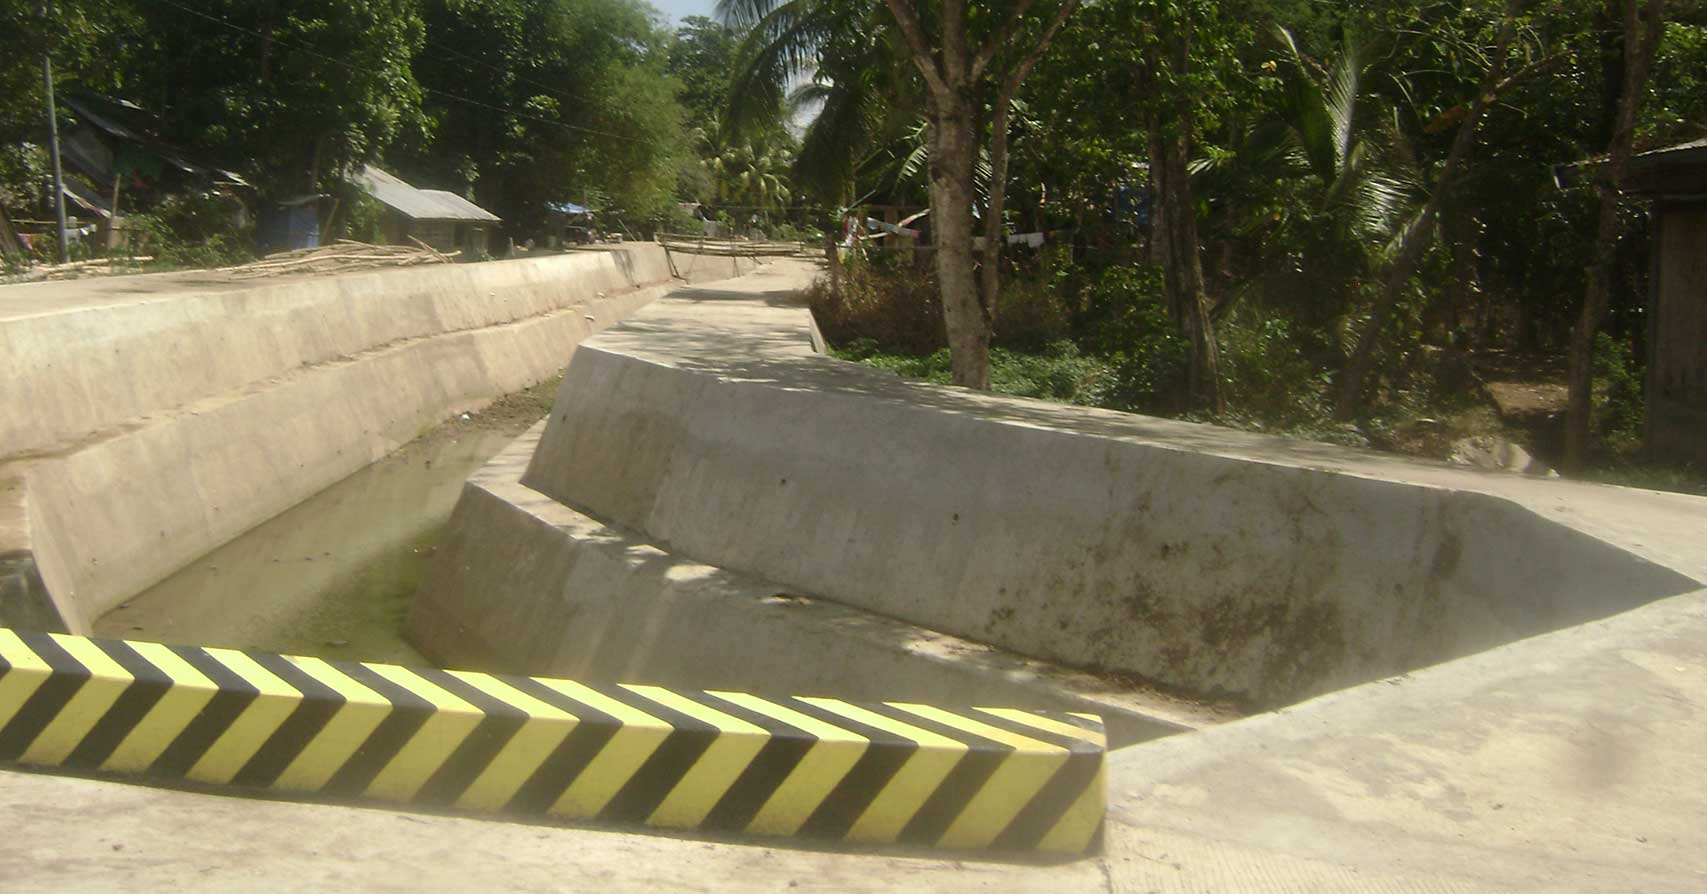 kabankalan city flood control project by dynamic builders and construction company of bacolod city